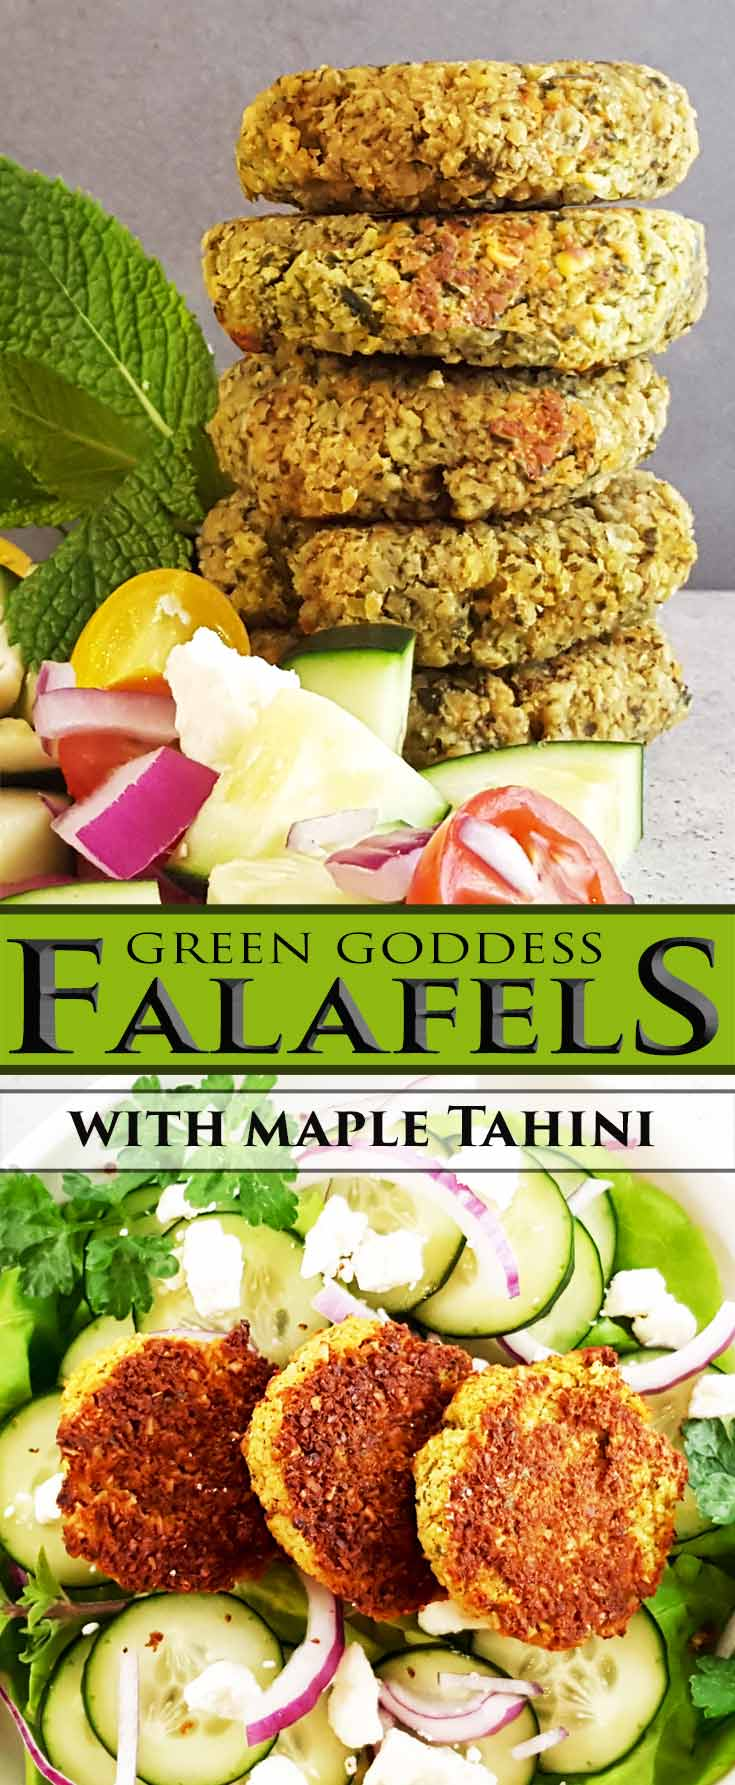 Homemade falafels get a flavorful twist, green goddess style. Serve with an easy maple tahini sauce on a pita sandwich or salad. Vegetarian. Perfect for a picnic, to make ahead, and to freeze.